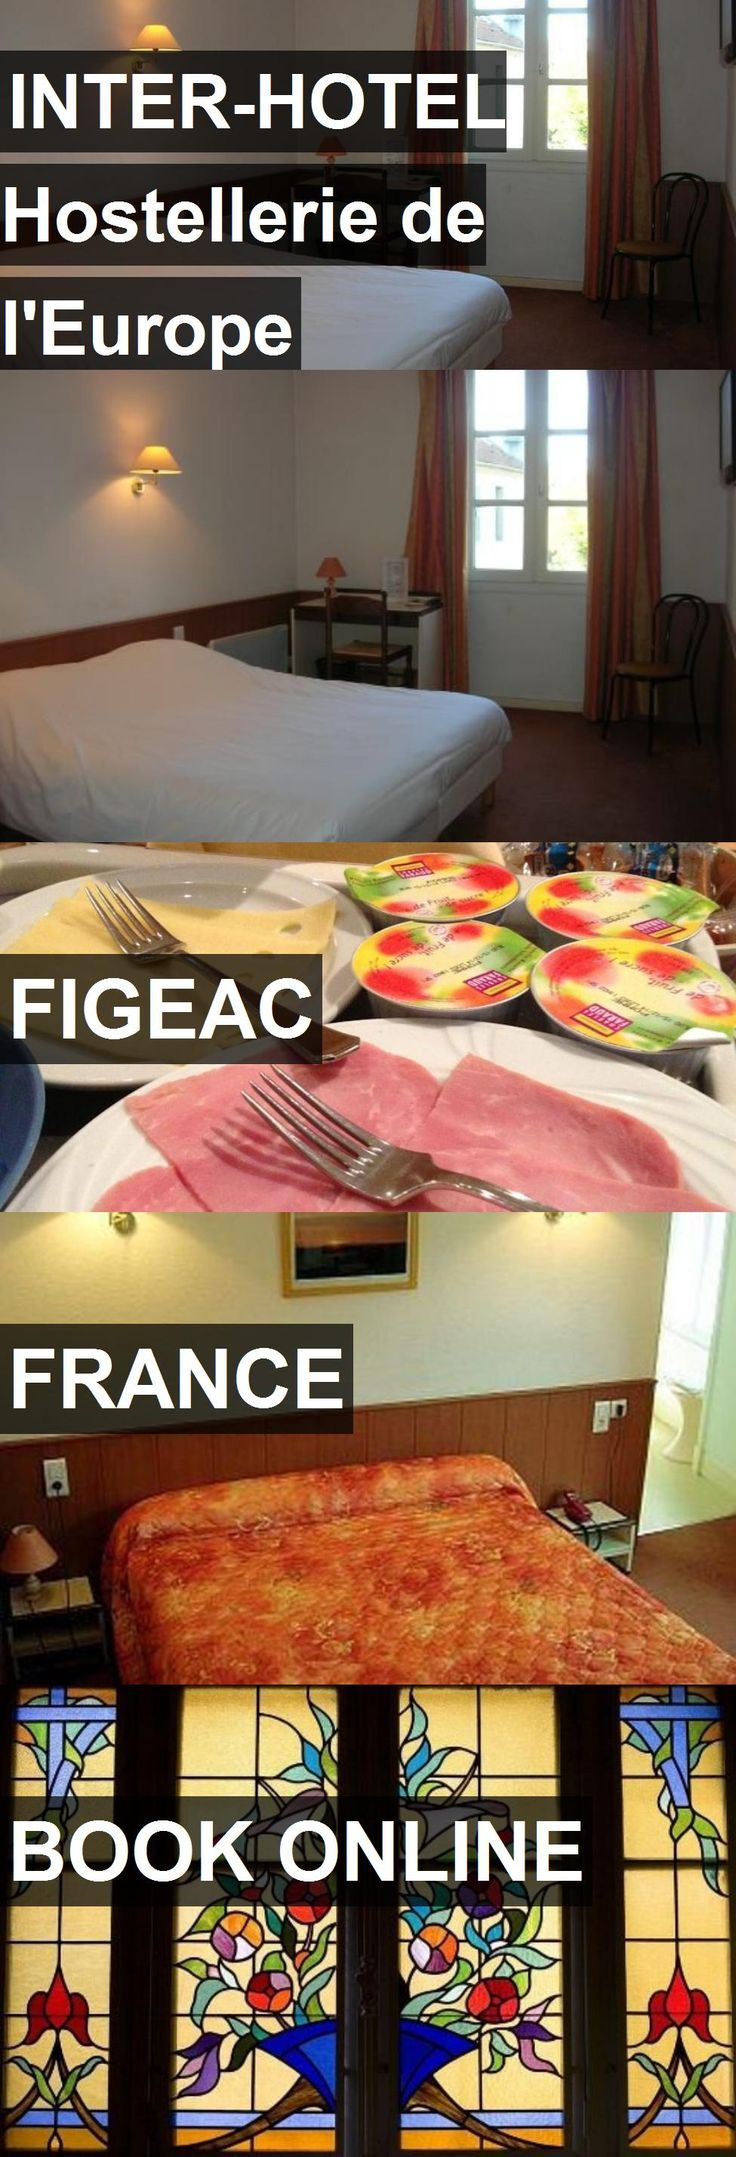 INTER-HOTEL Hostellerie de l'Europe in Figeac, France. For more information, photos, reviews and best prices please follow the link. #France #Figeac #travel #vacation #hotel #hostel